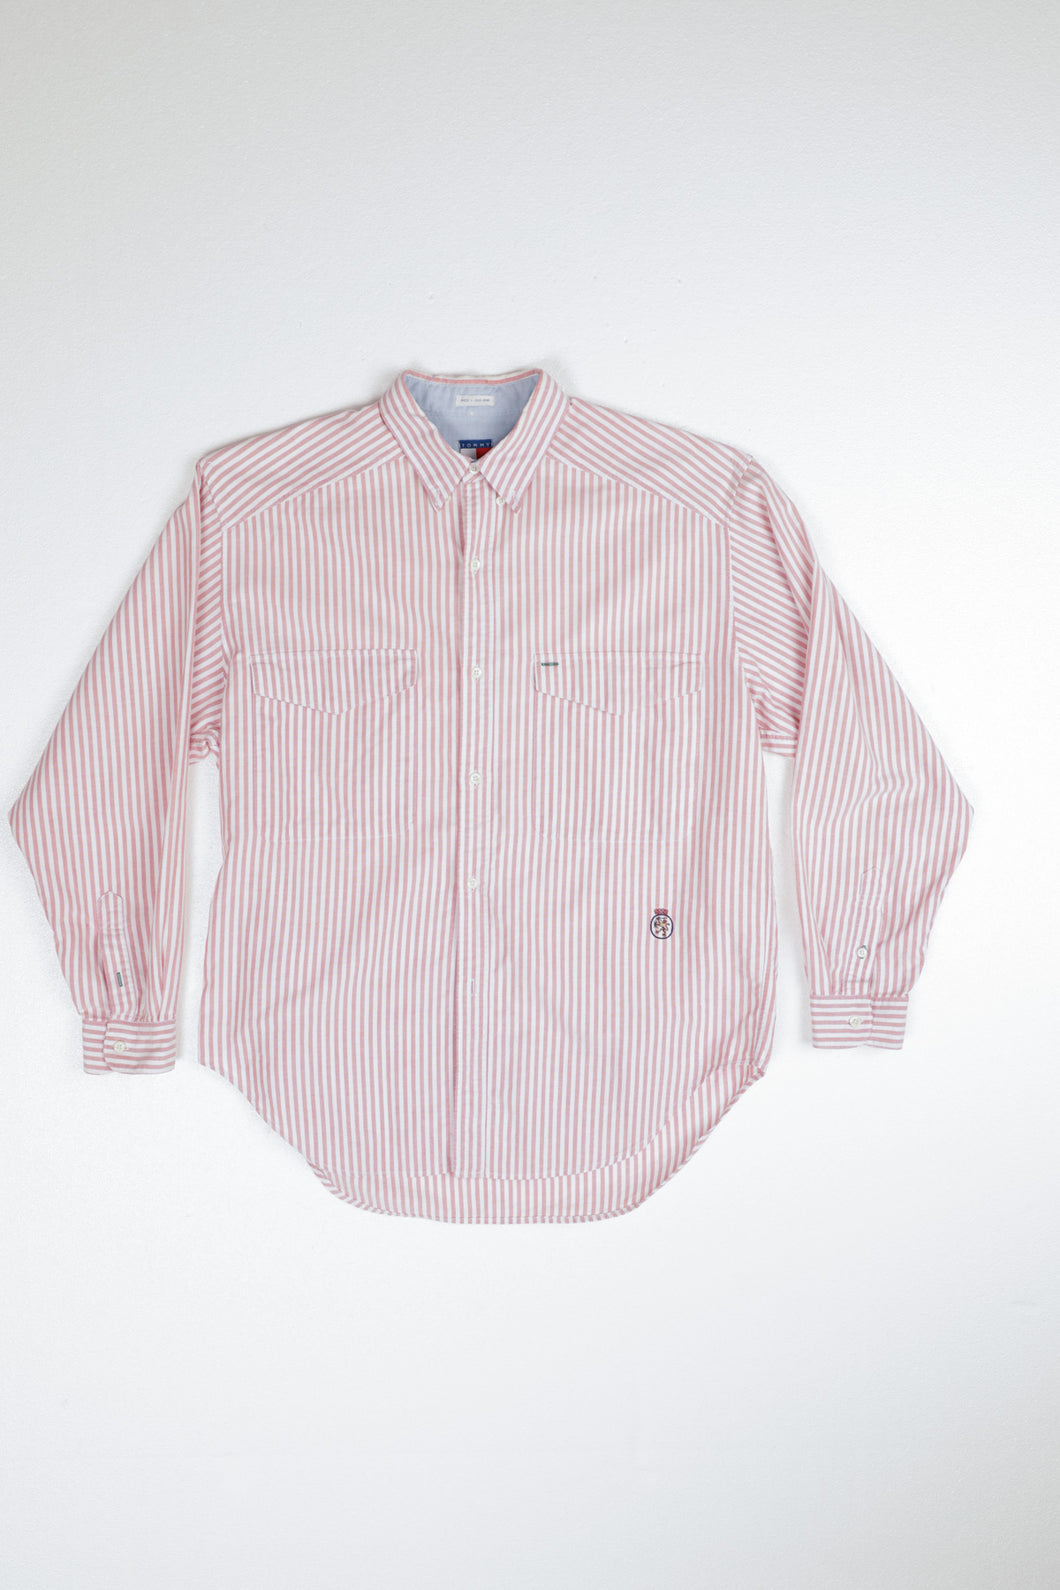 Bootleg Tommy Hilfiger Button Up